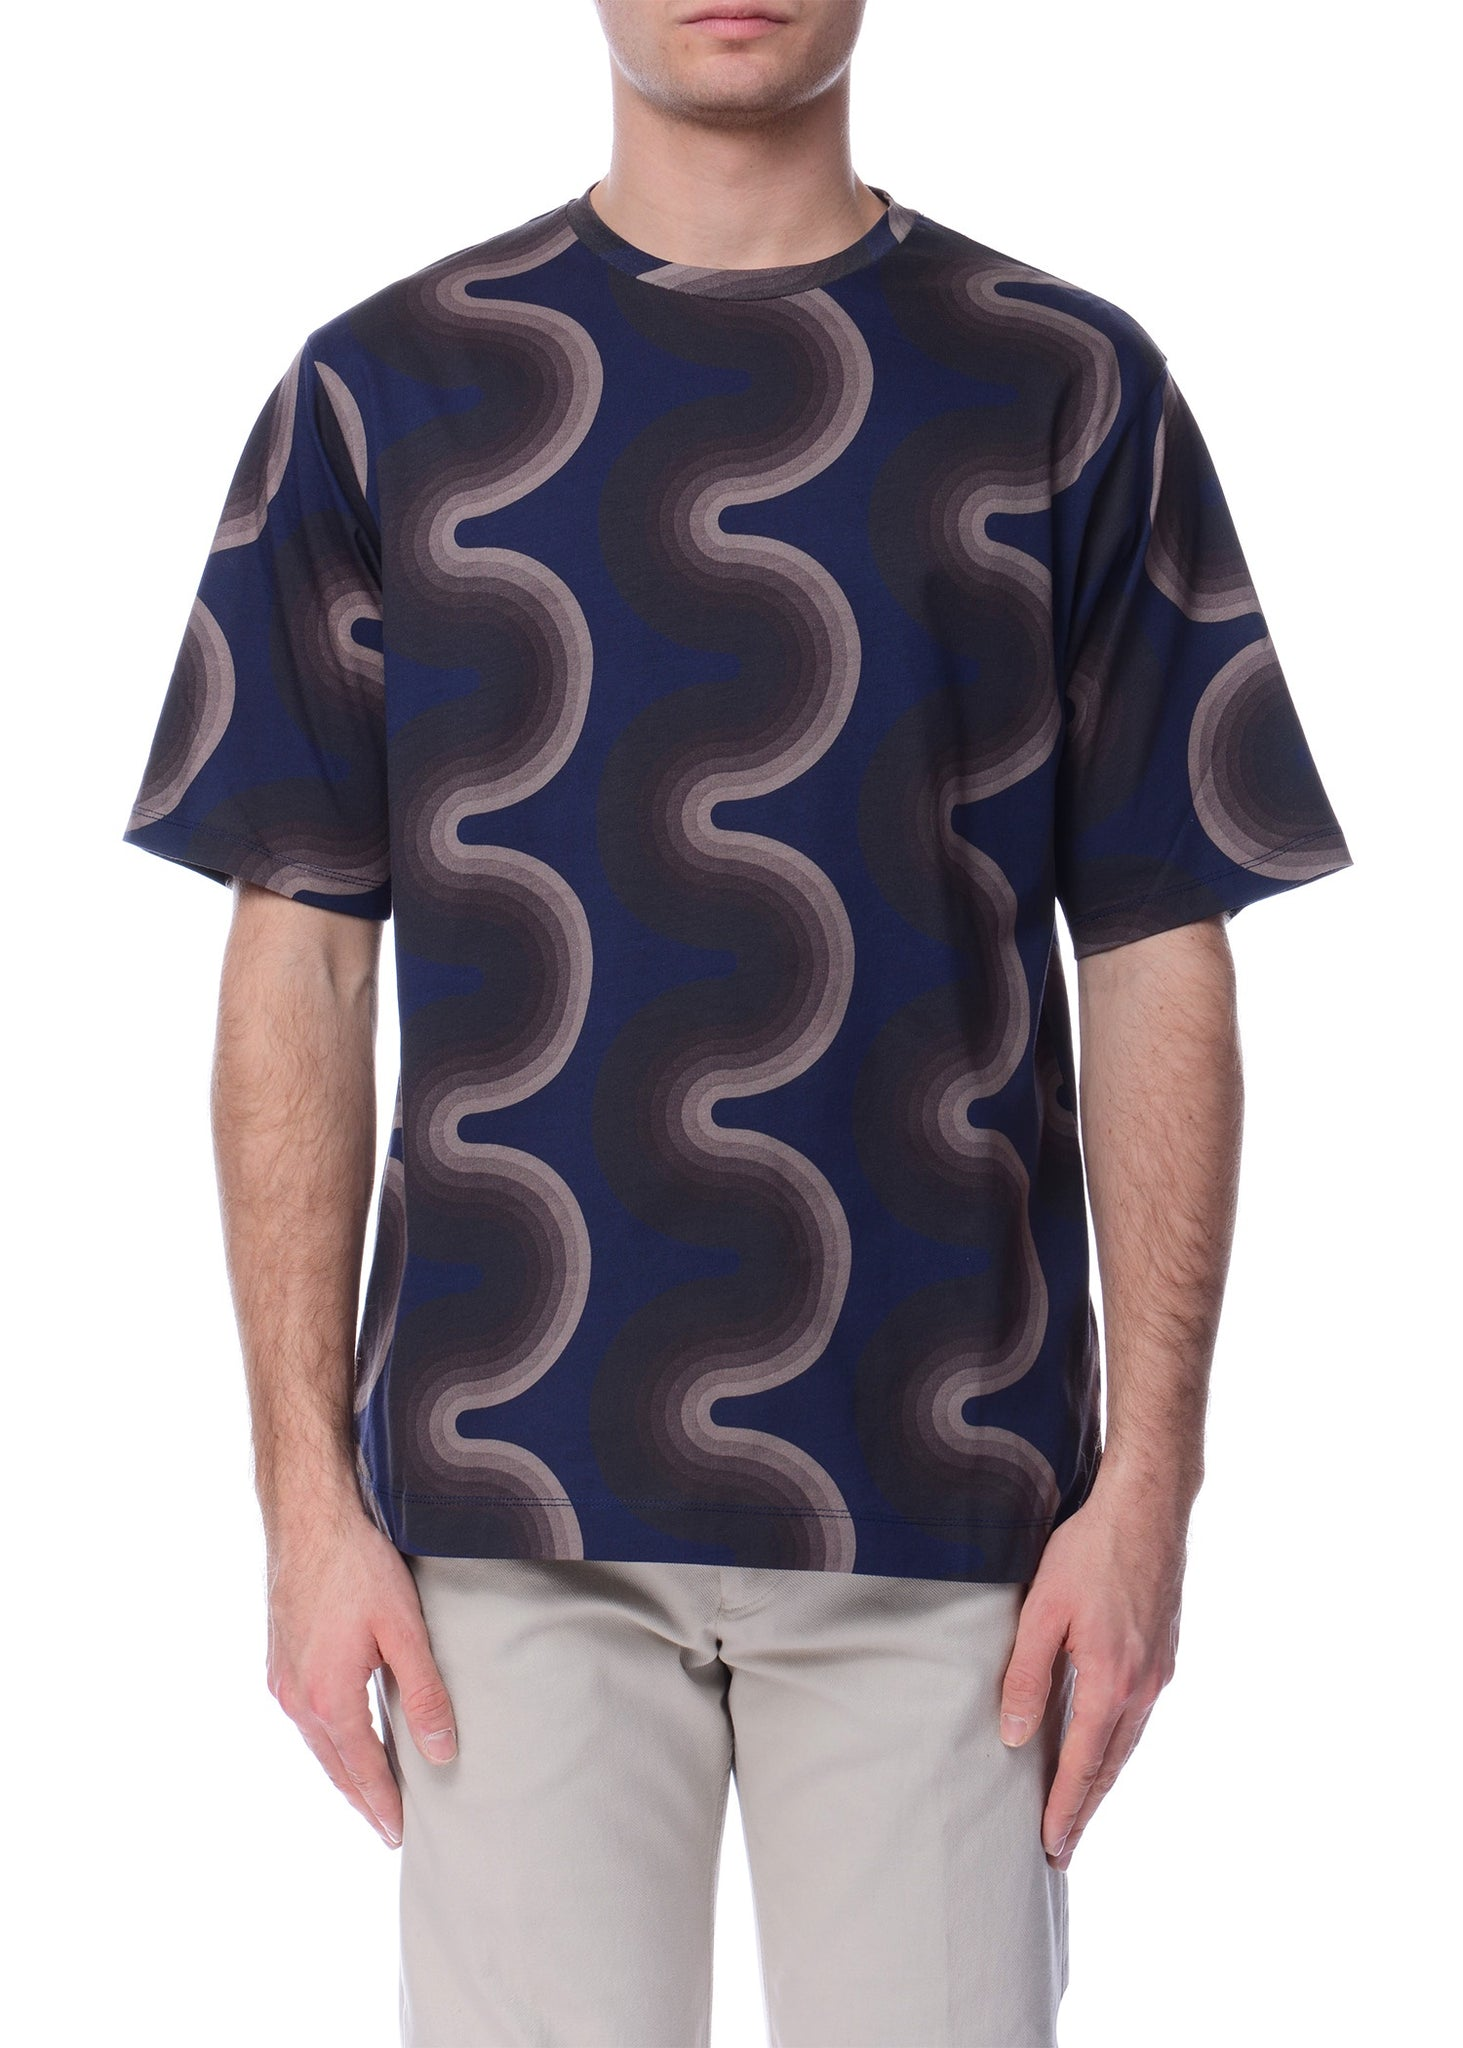 T-Shirt à Motif de Vague Brun|Brown Wave Pattern T-Shirt